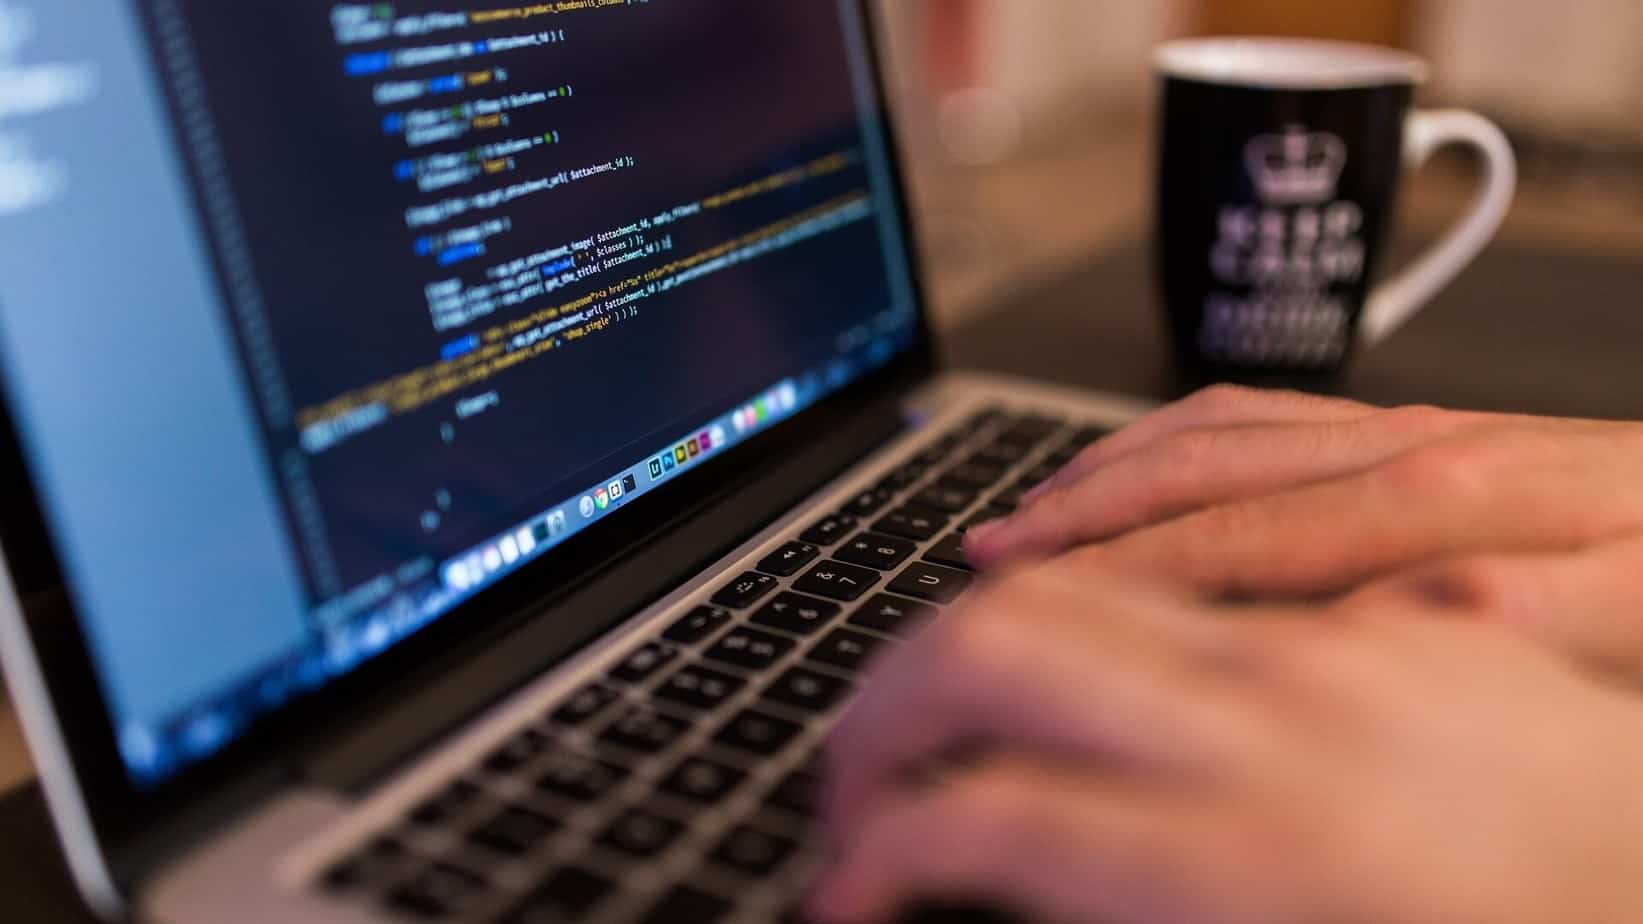 Begin Your Coding Journey With This The All-in-One Coding Skills Bundle